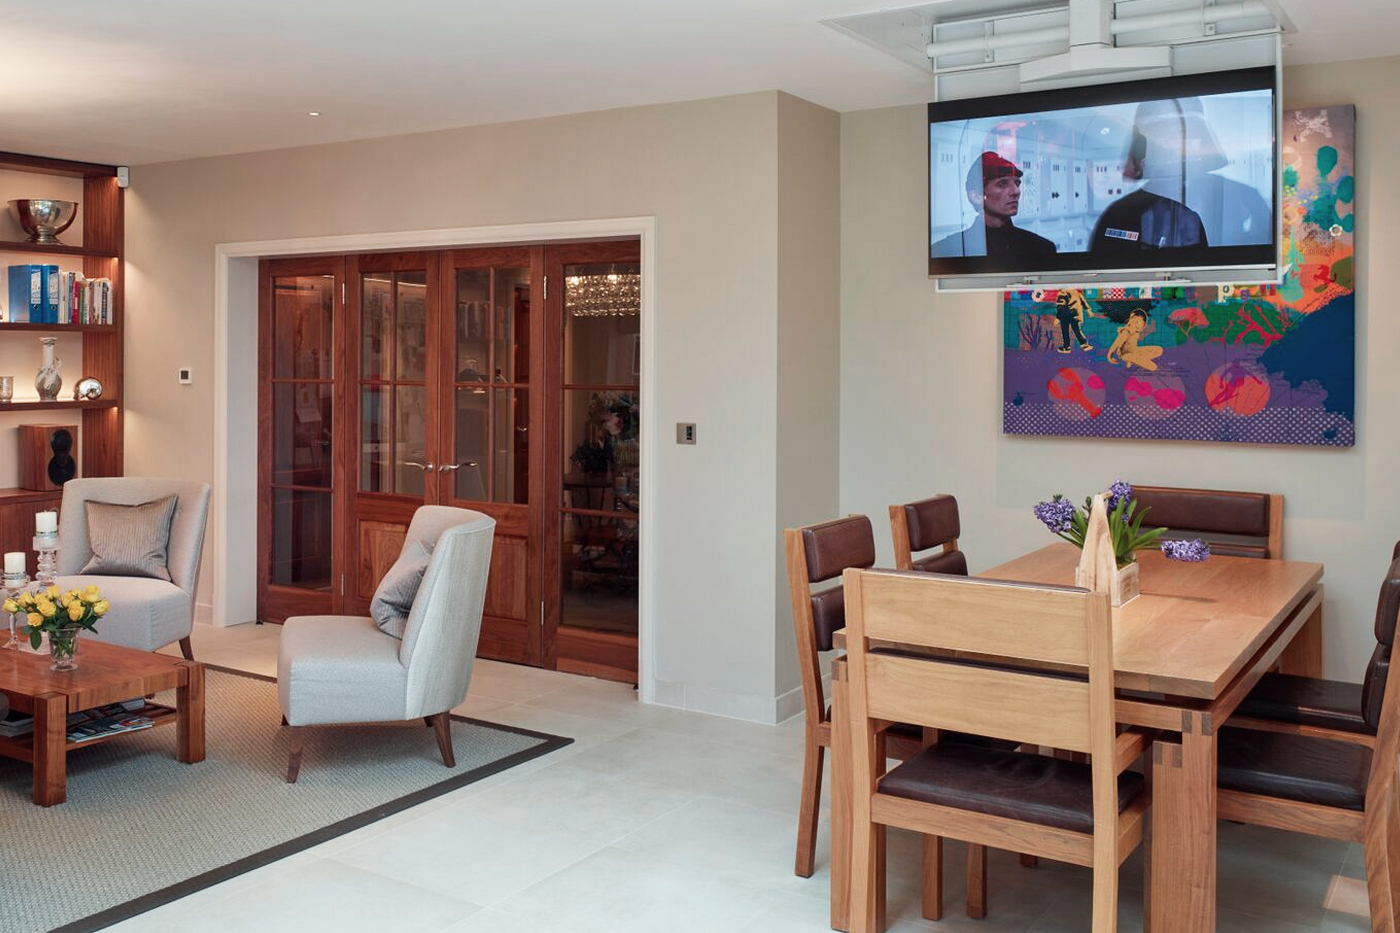 Television in a open plan kitchen